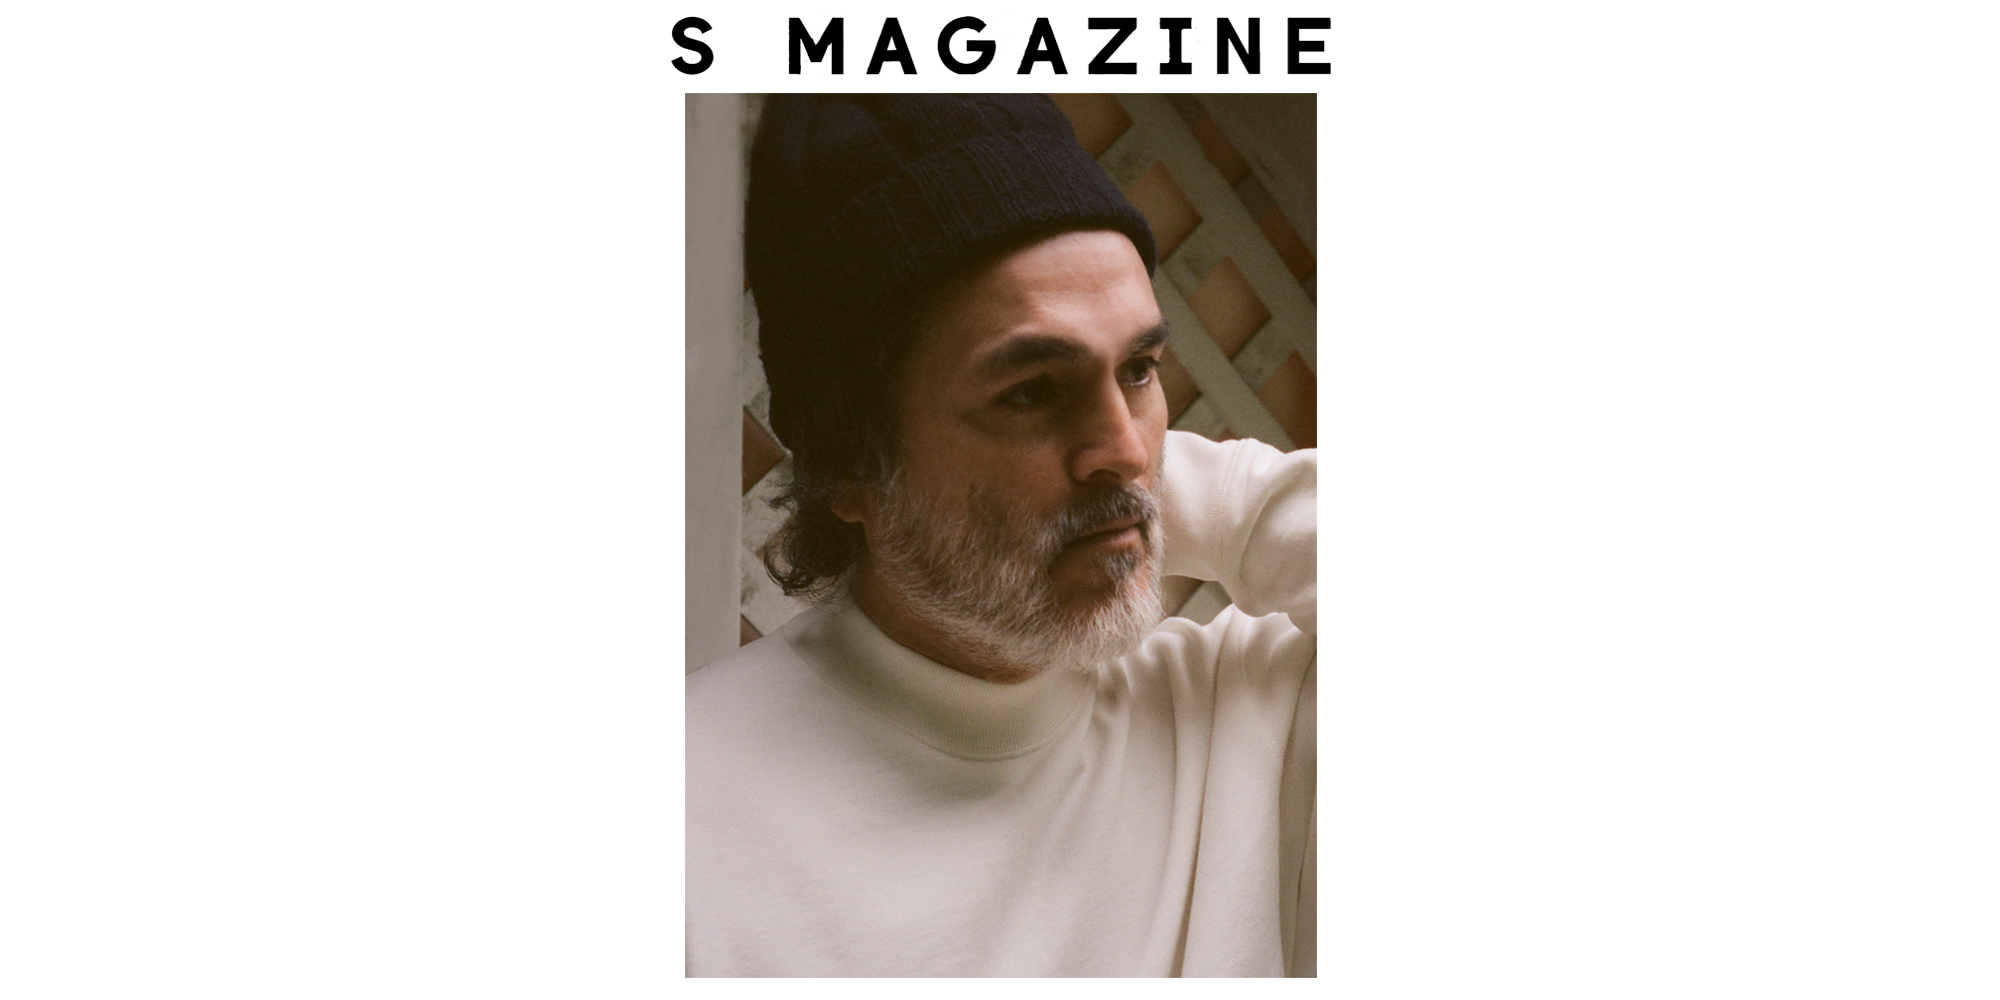 EDDIE CHACON on S MAGAZINE